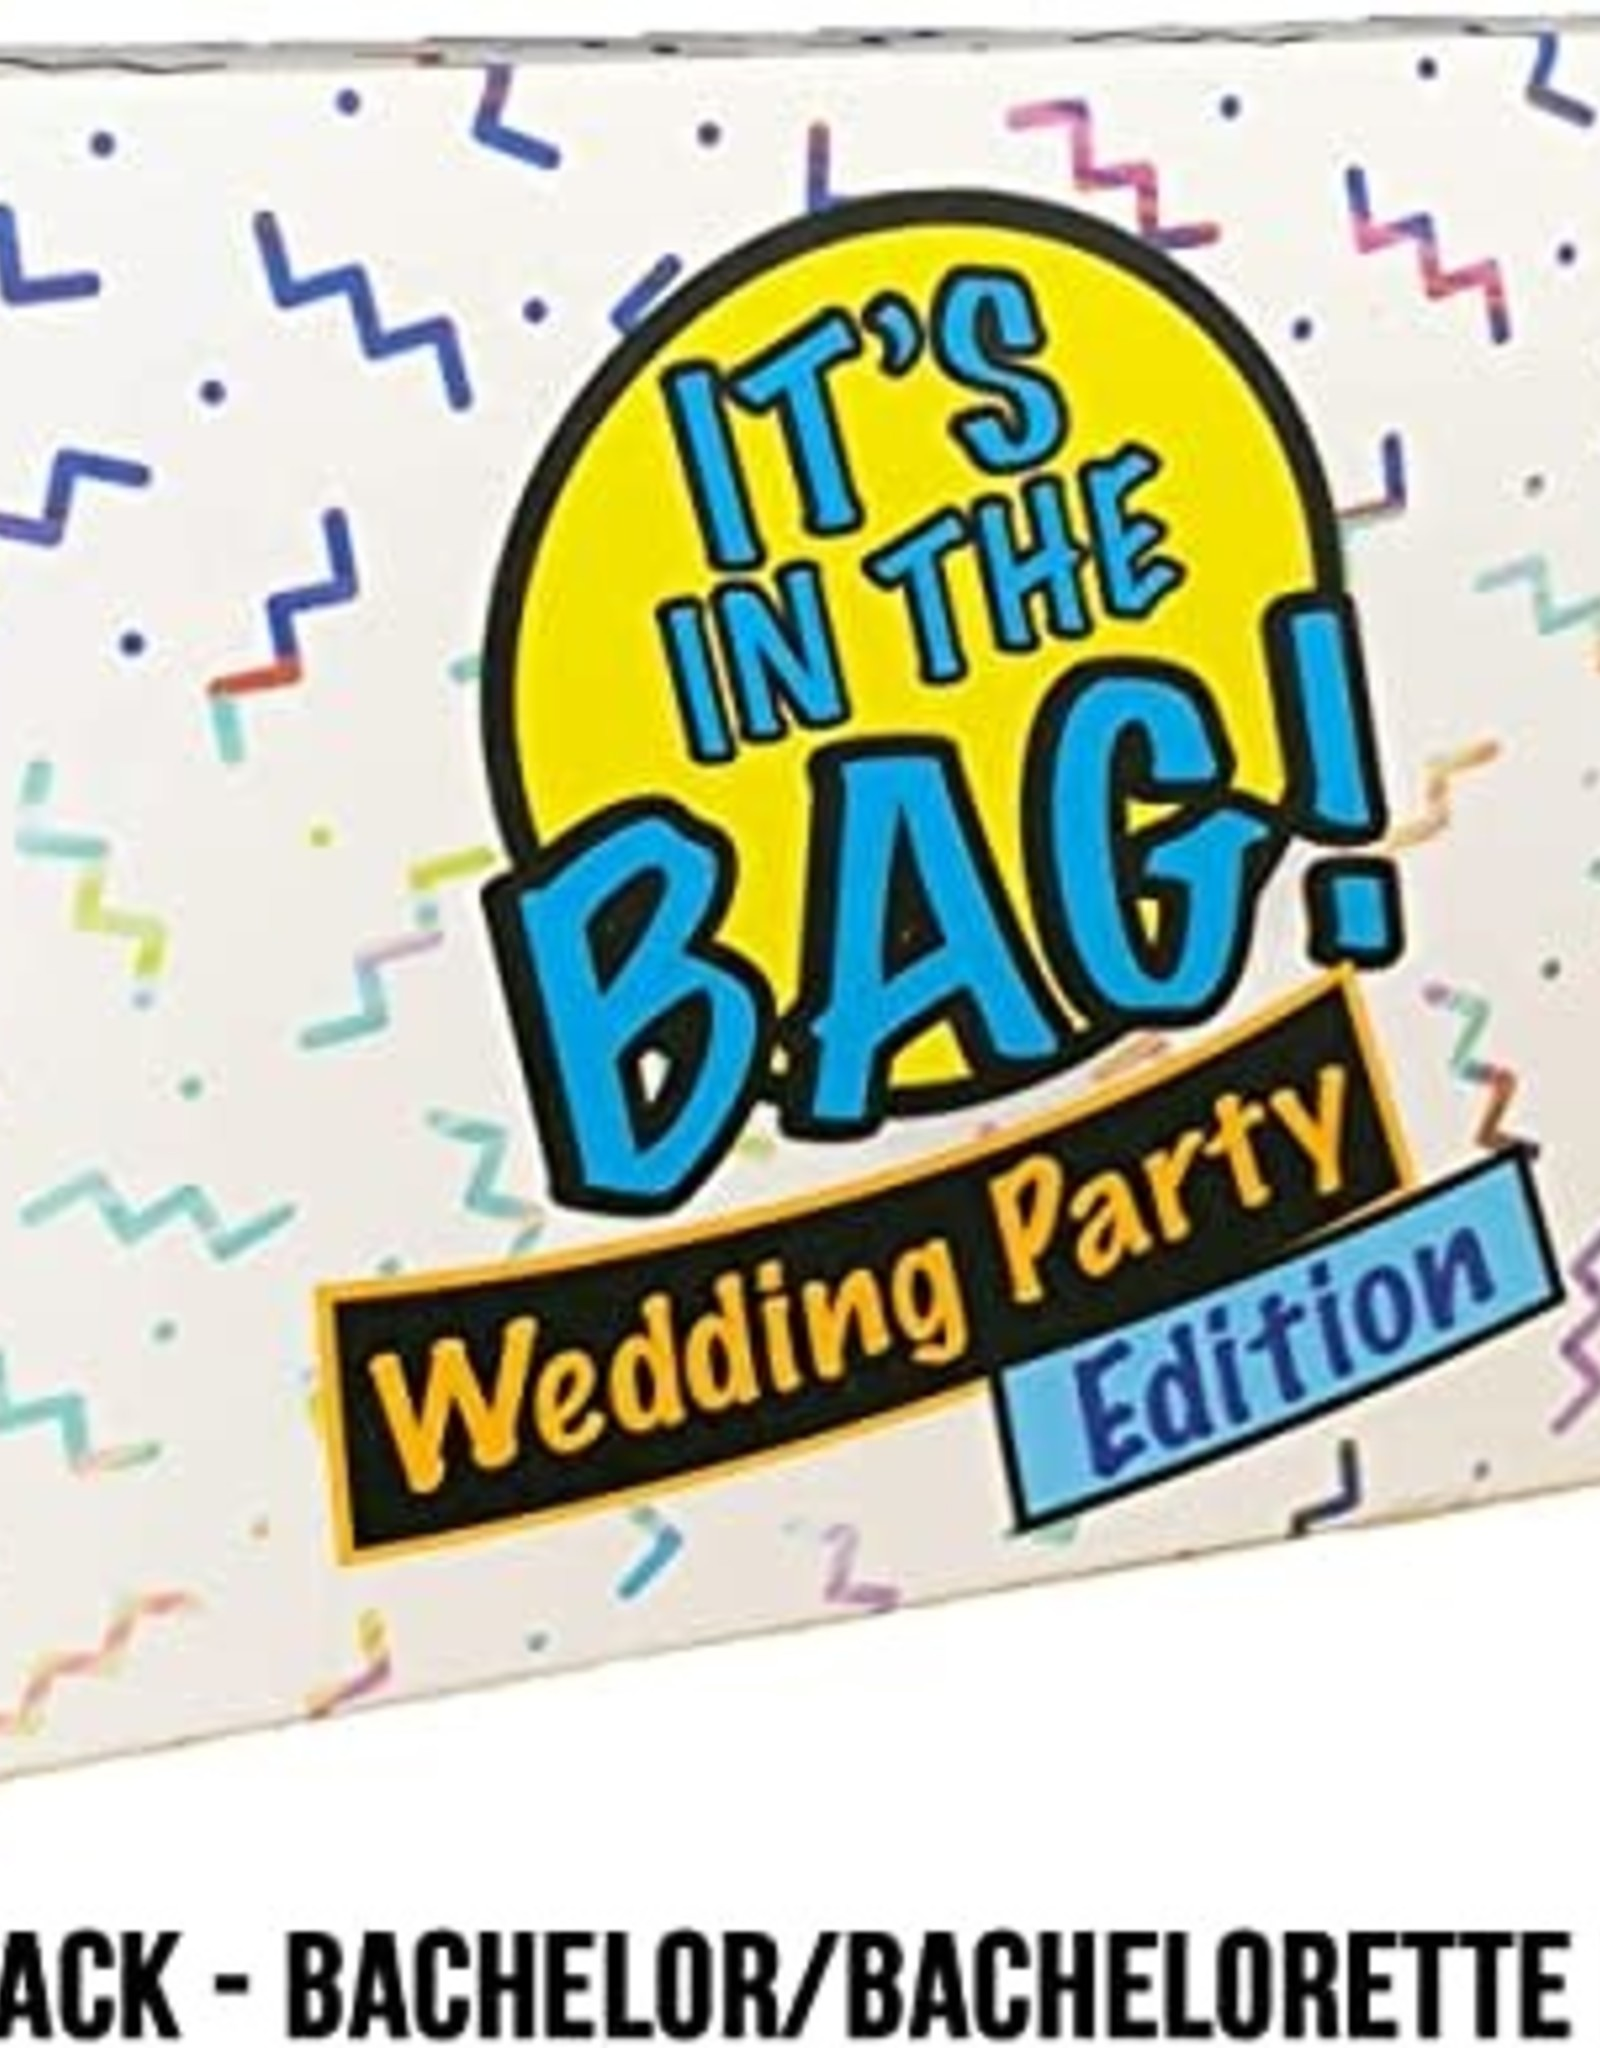 It's in the Bag : Wedding Party